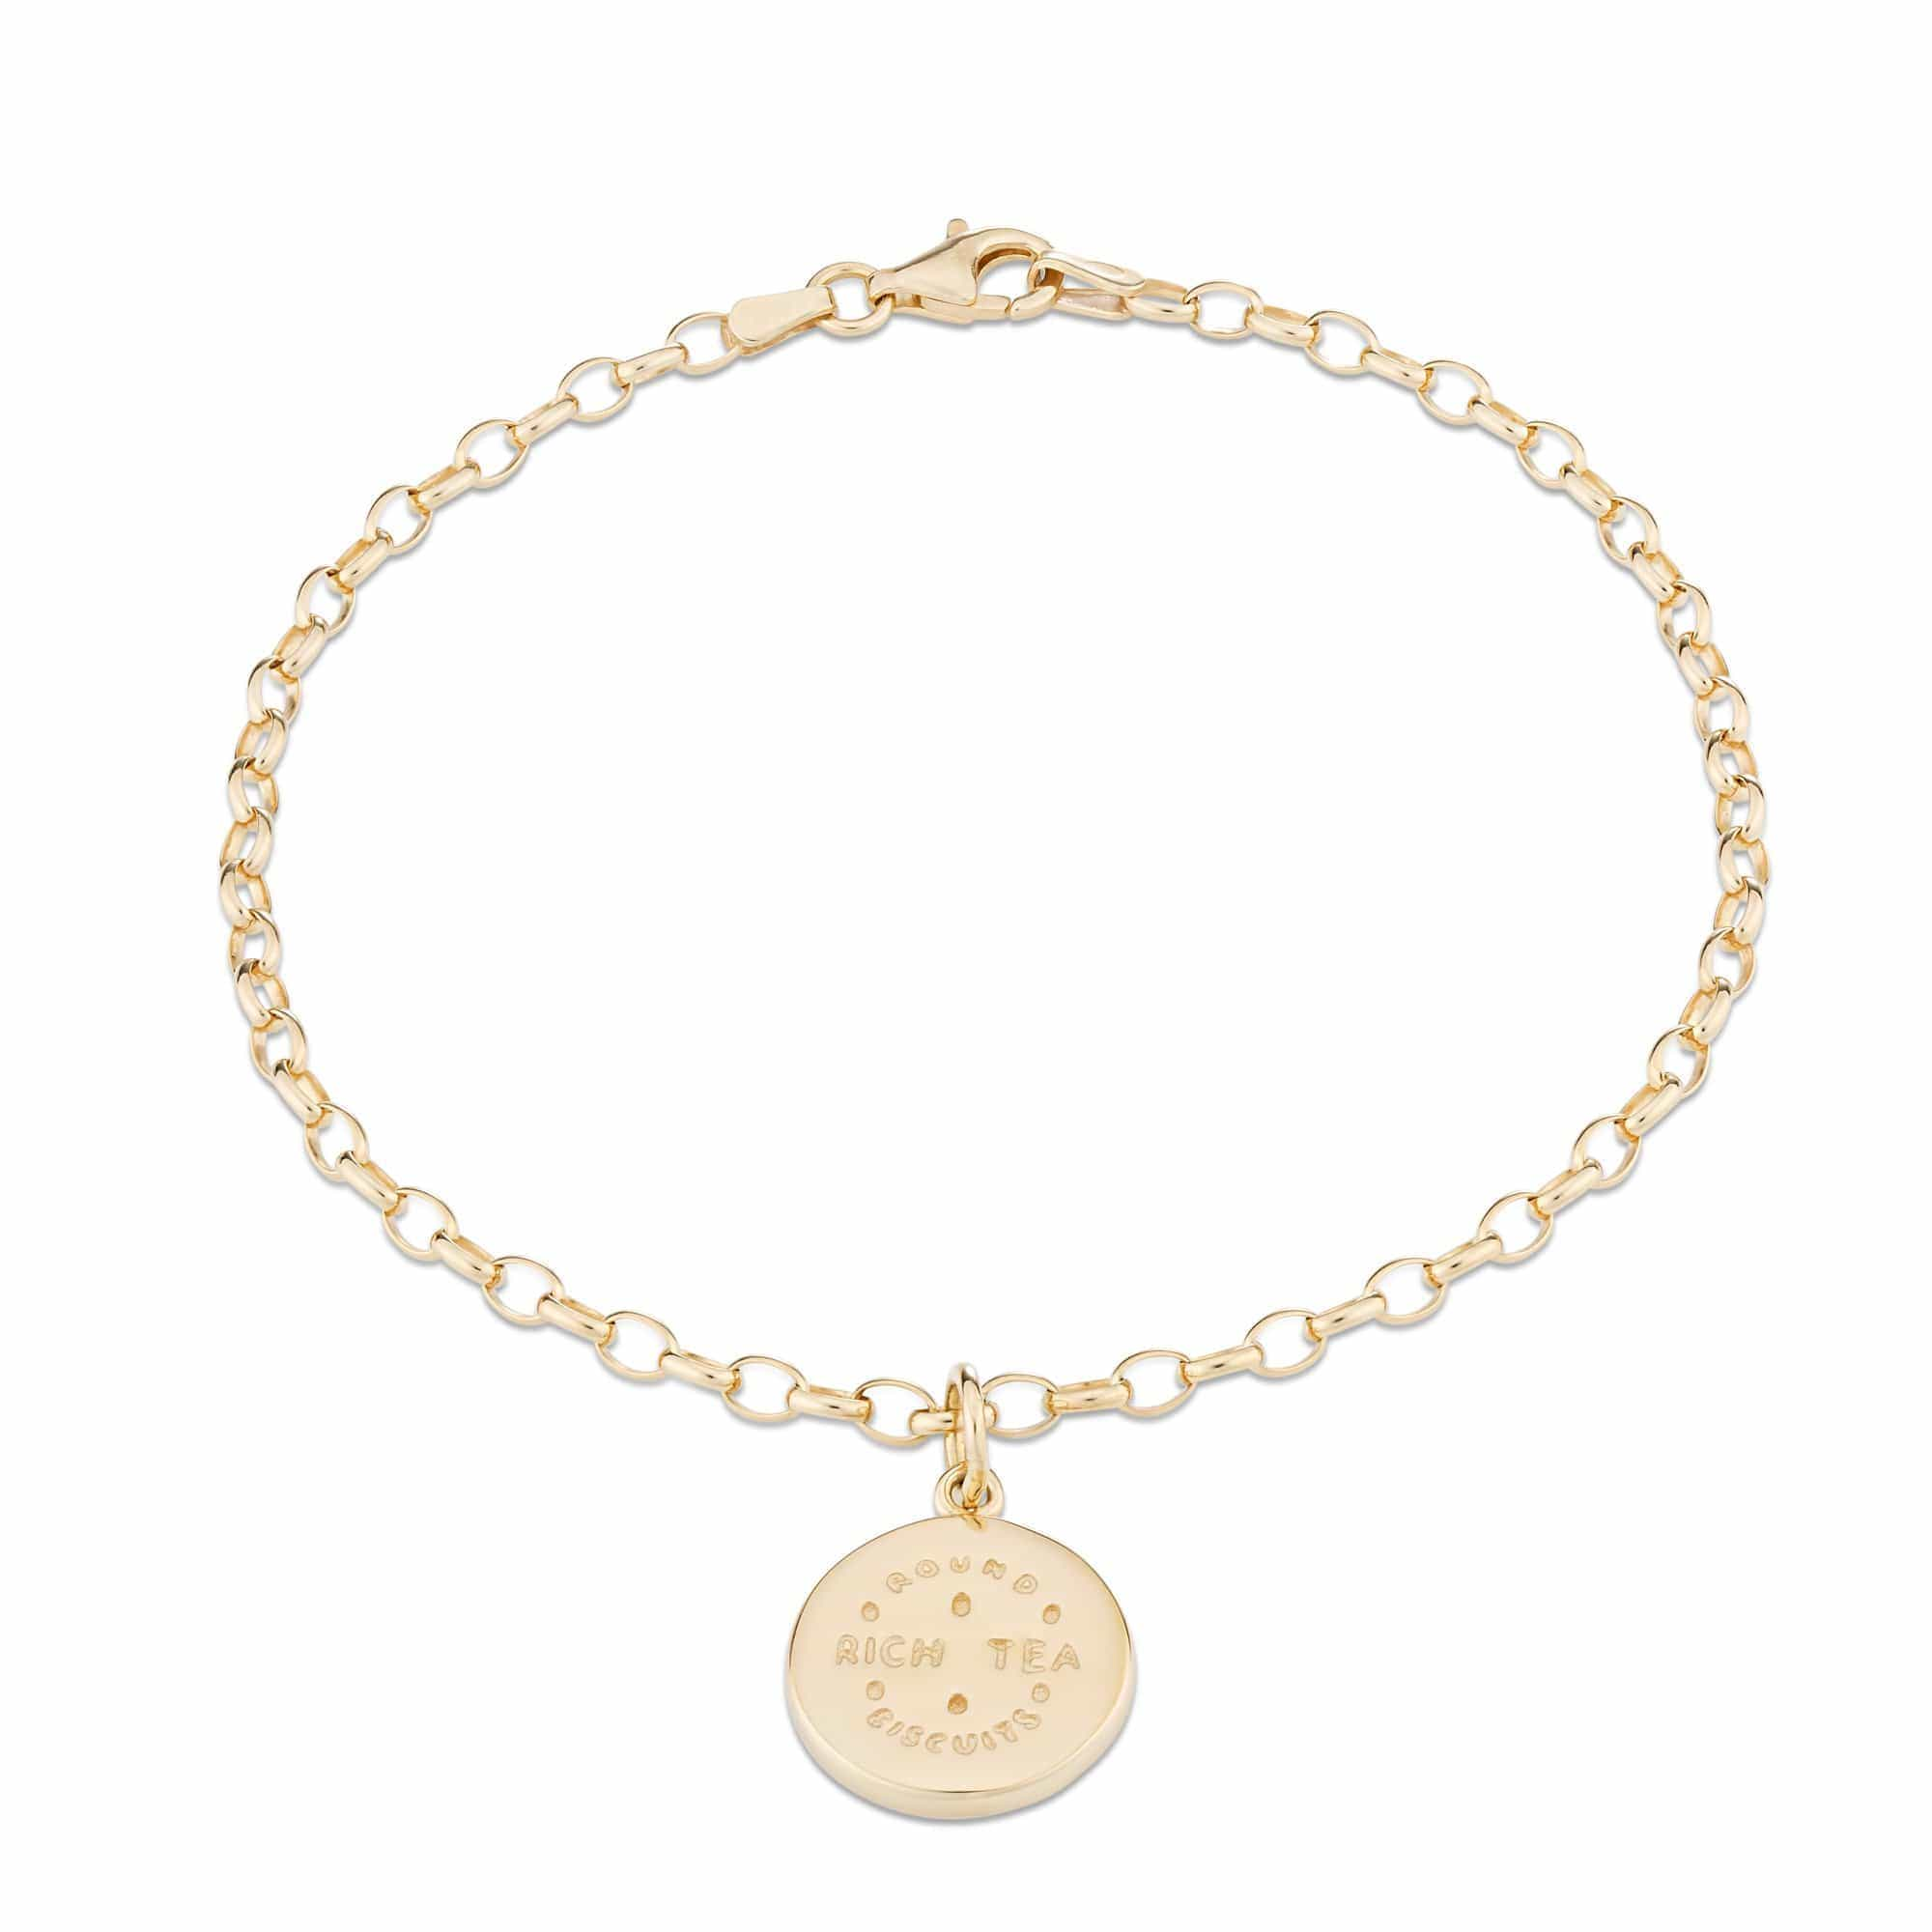 Personalised Gold Plated Rich Tea Charm Bracelet - Lily Charmed